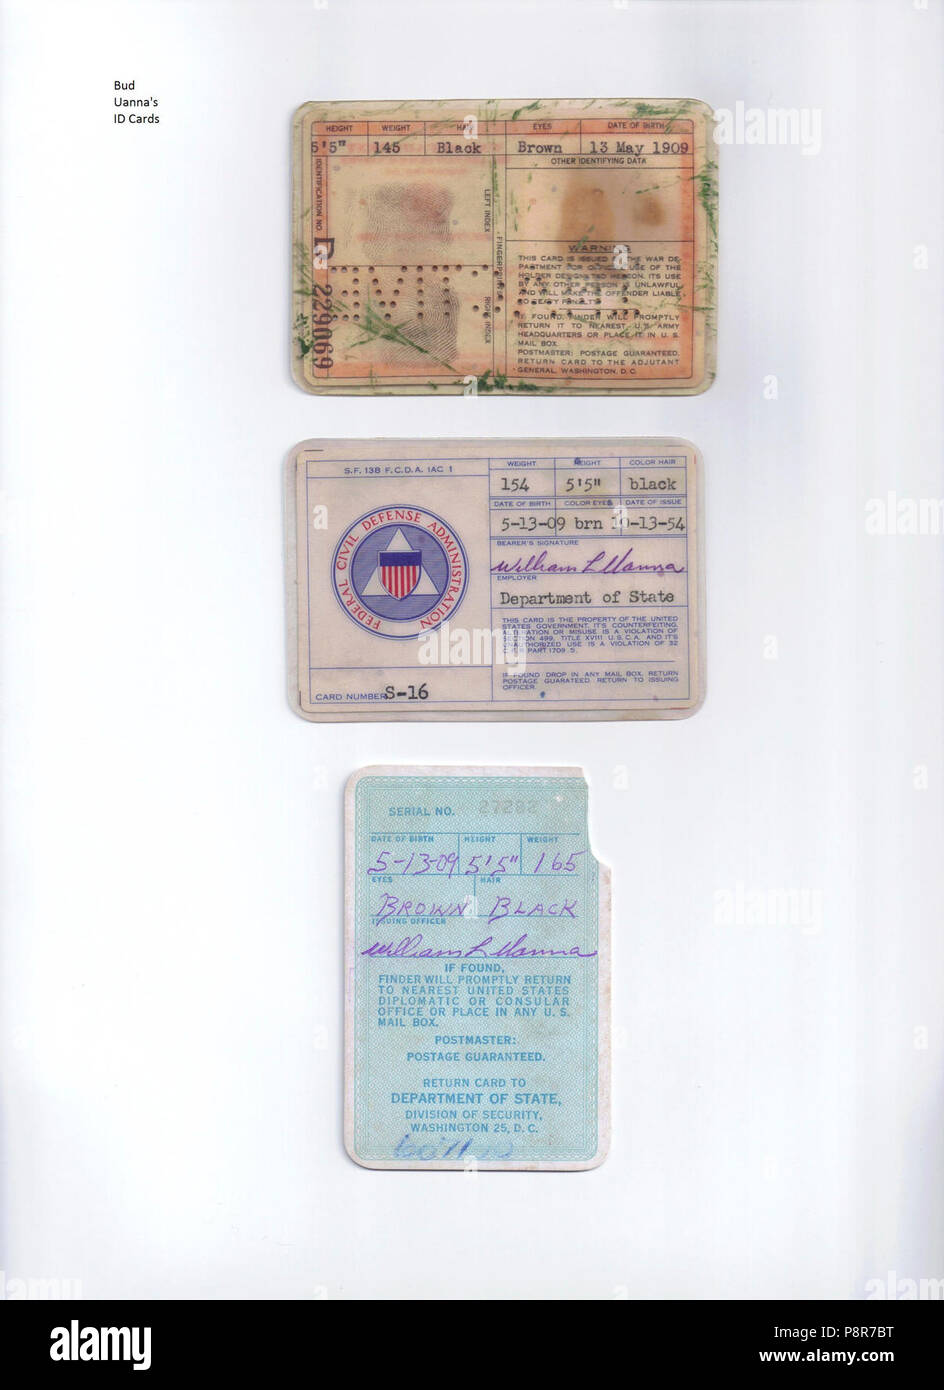 A Clue in an ongoing murder investigation Bud Uanna ID Cards p. 2. - Stock Image